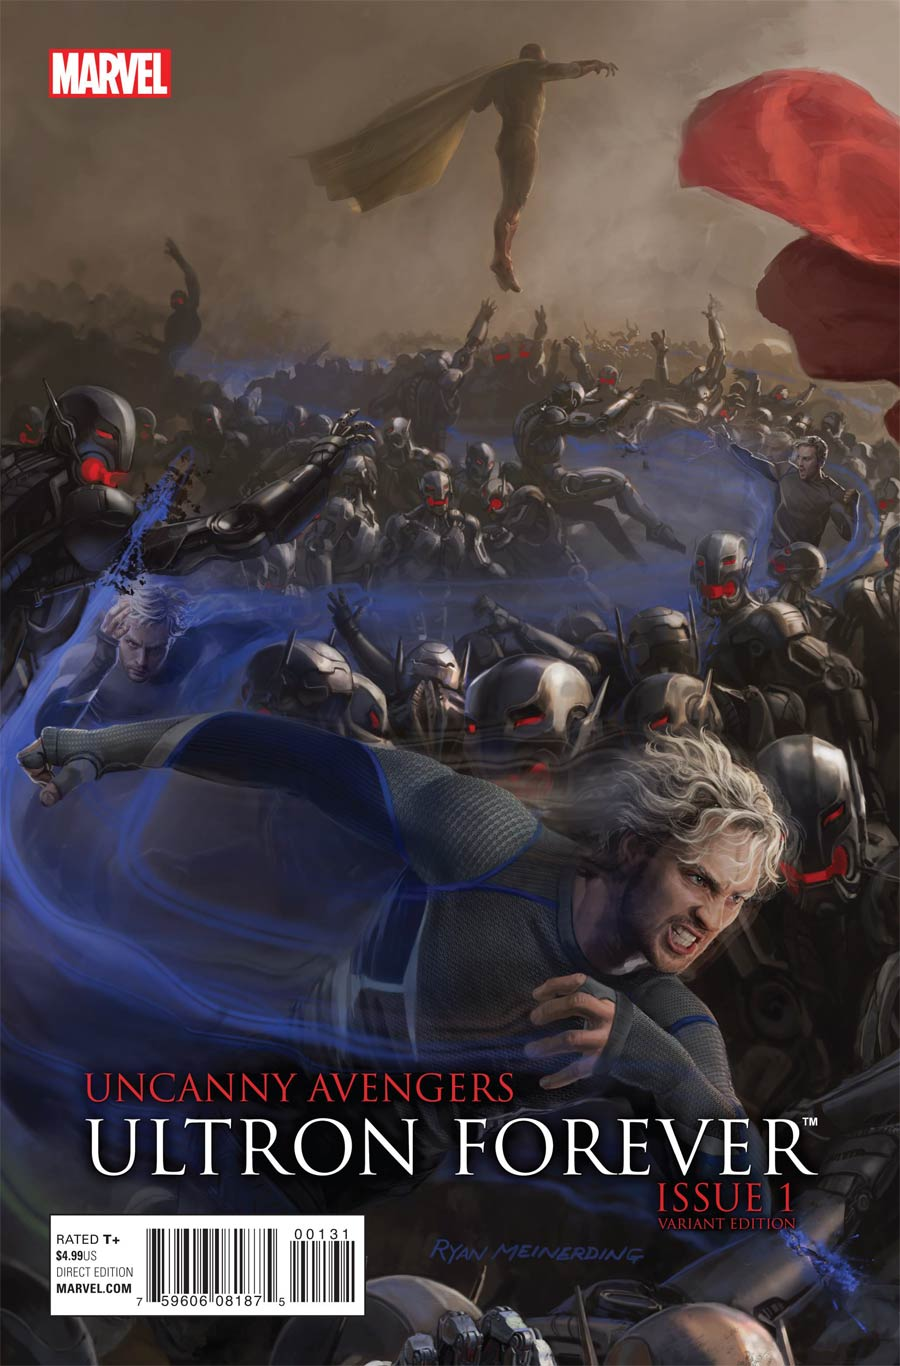 Uncanny Avengers Ultron Forever #1 Cover B Avengers Age Of Ultron Movie Connecting G Variant Cover (Ultron Forever Part 3)